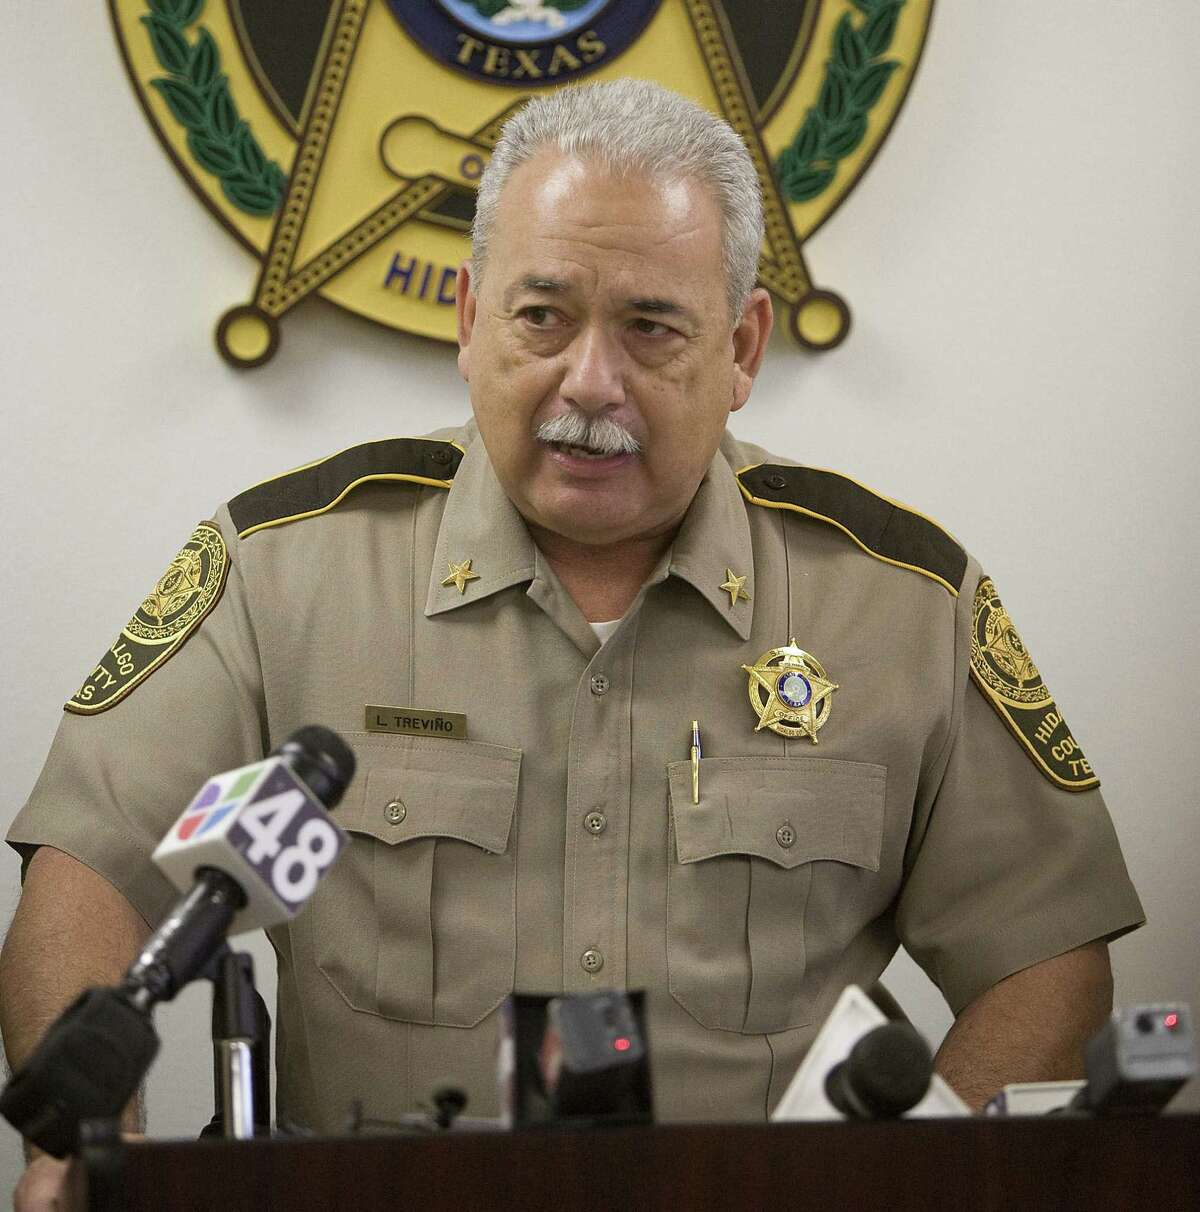 """Hidalgo County Sheriff Guadalupe """"Lupe"""" Trevino cited """"internal and external pressures"""" in submitting his resignation Friday. His tenure as sheriff has been plagued by controversy."""